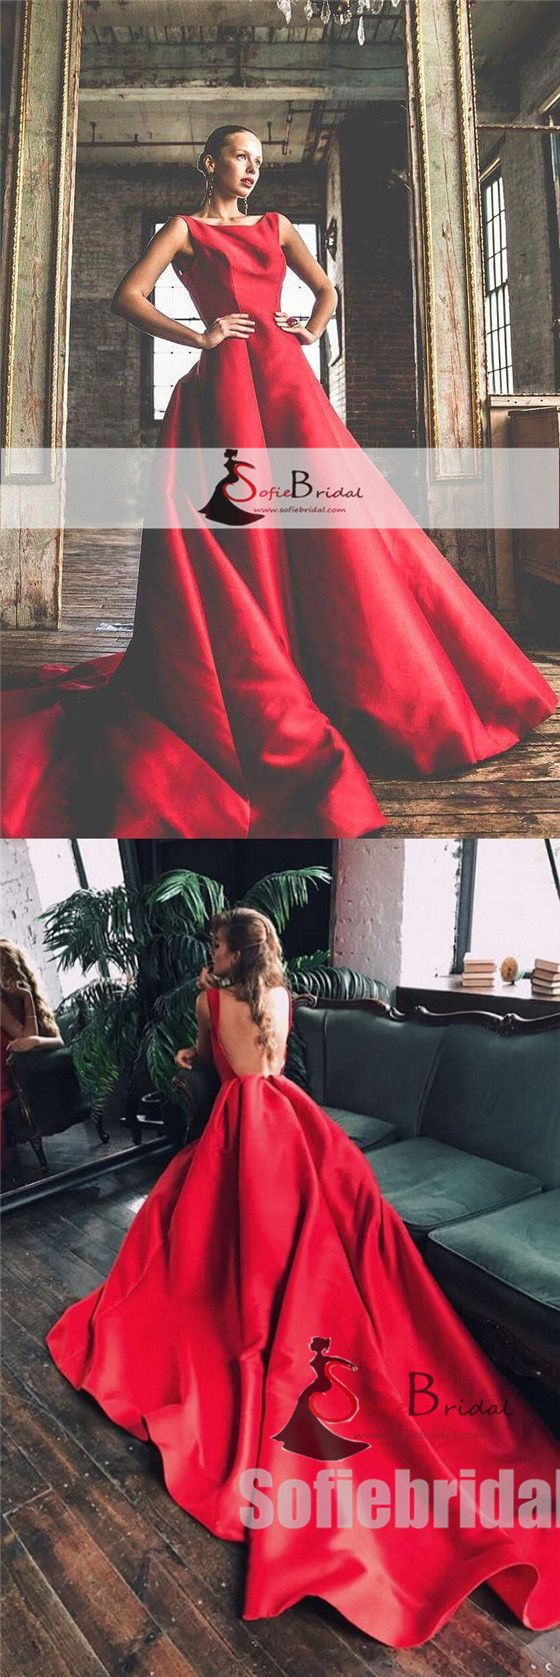 Scoop backless red aline satin prom dresses long train prom